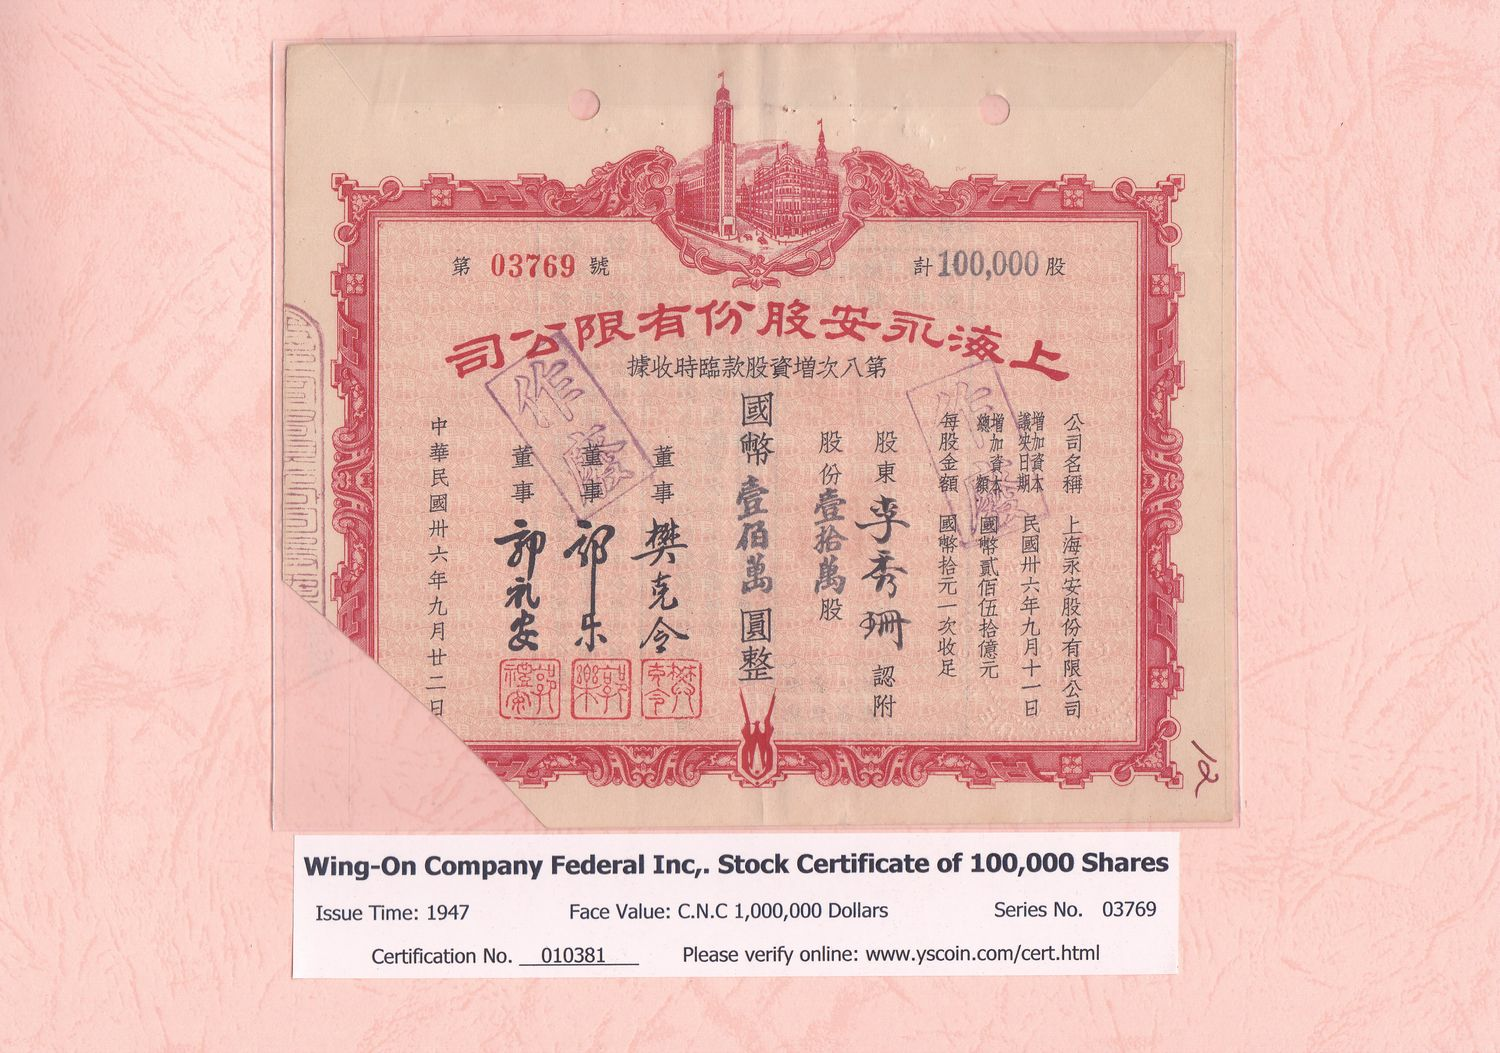 010381, Wing-On Company Federal Inc,. Stock Certificate of 100,000 Shares